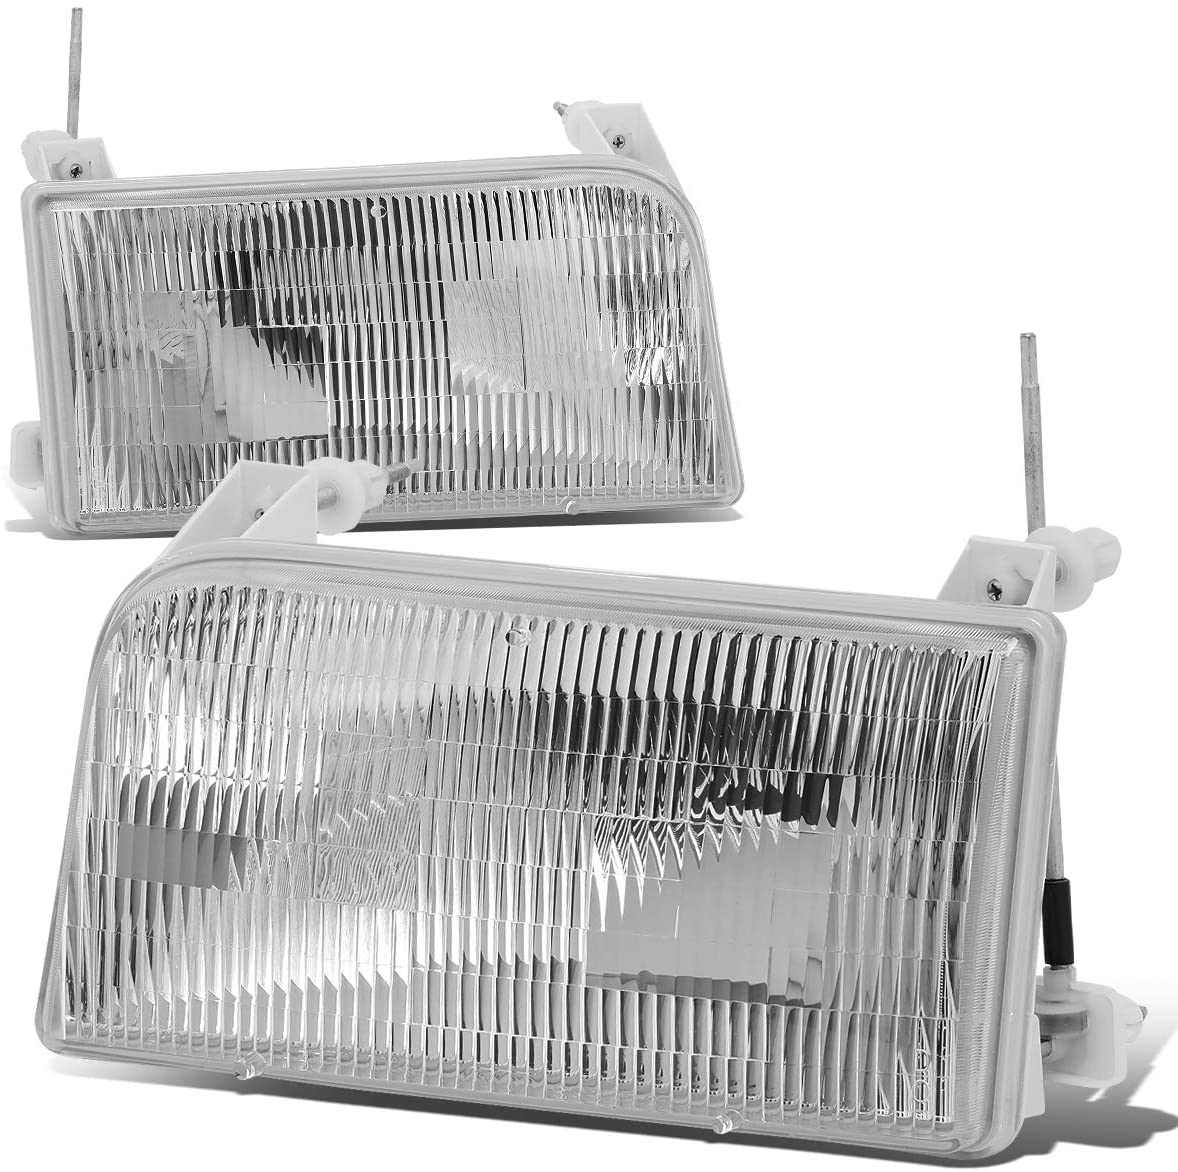 Pair of Chrome Housing Crystal Lens Headlight Assembly Lamps Replacement for Ford F-150 F-250 F-350 Bronco 92-98